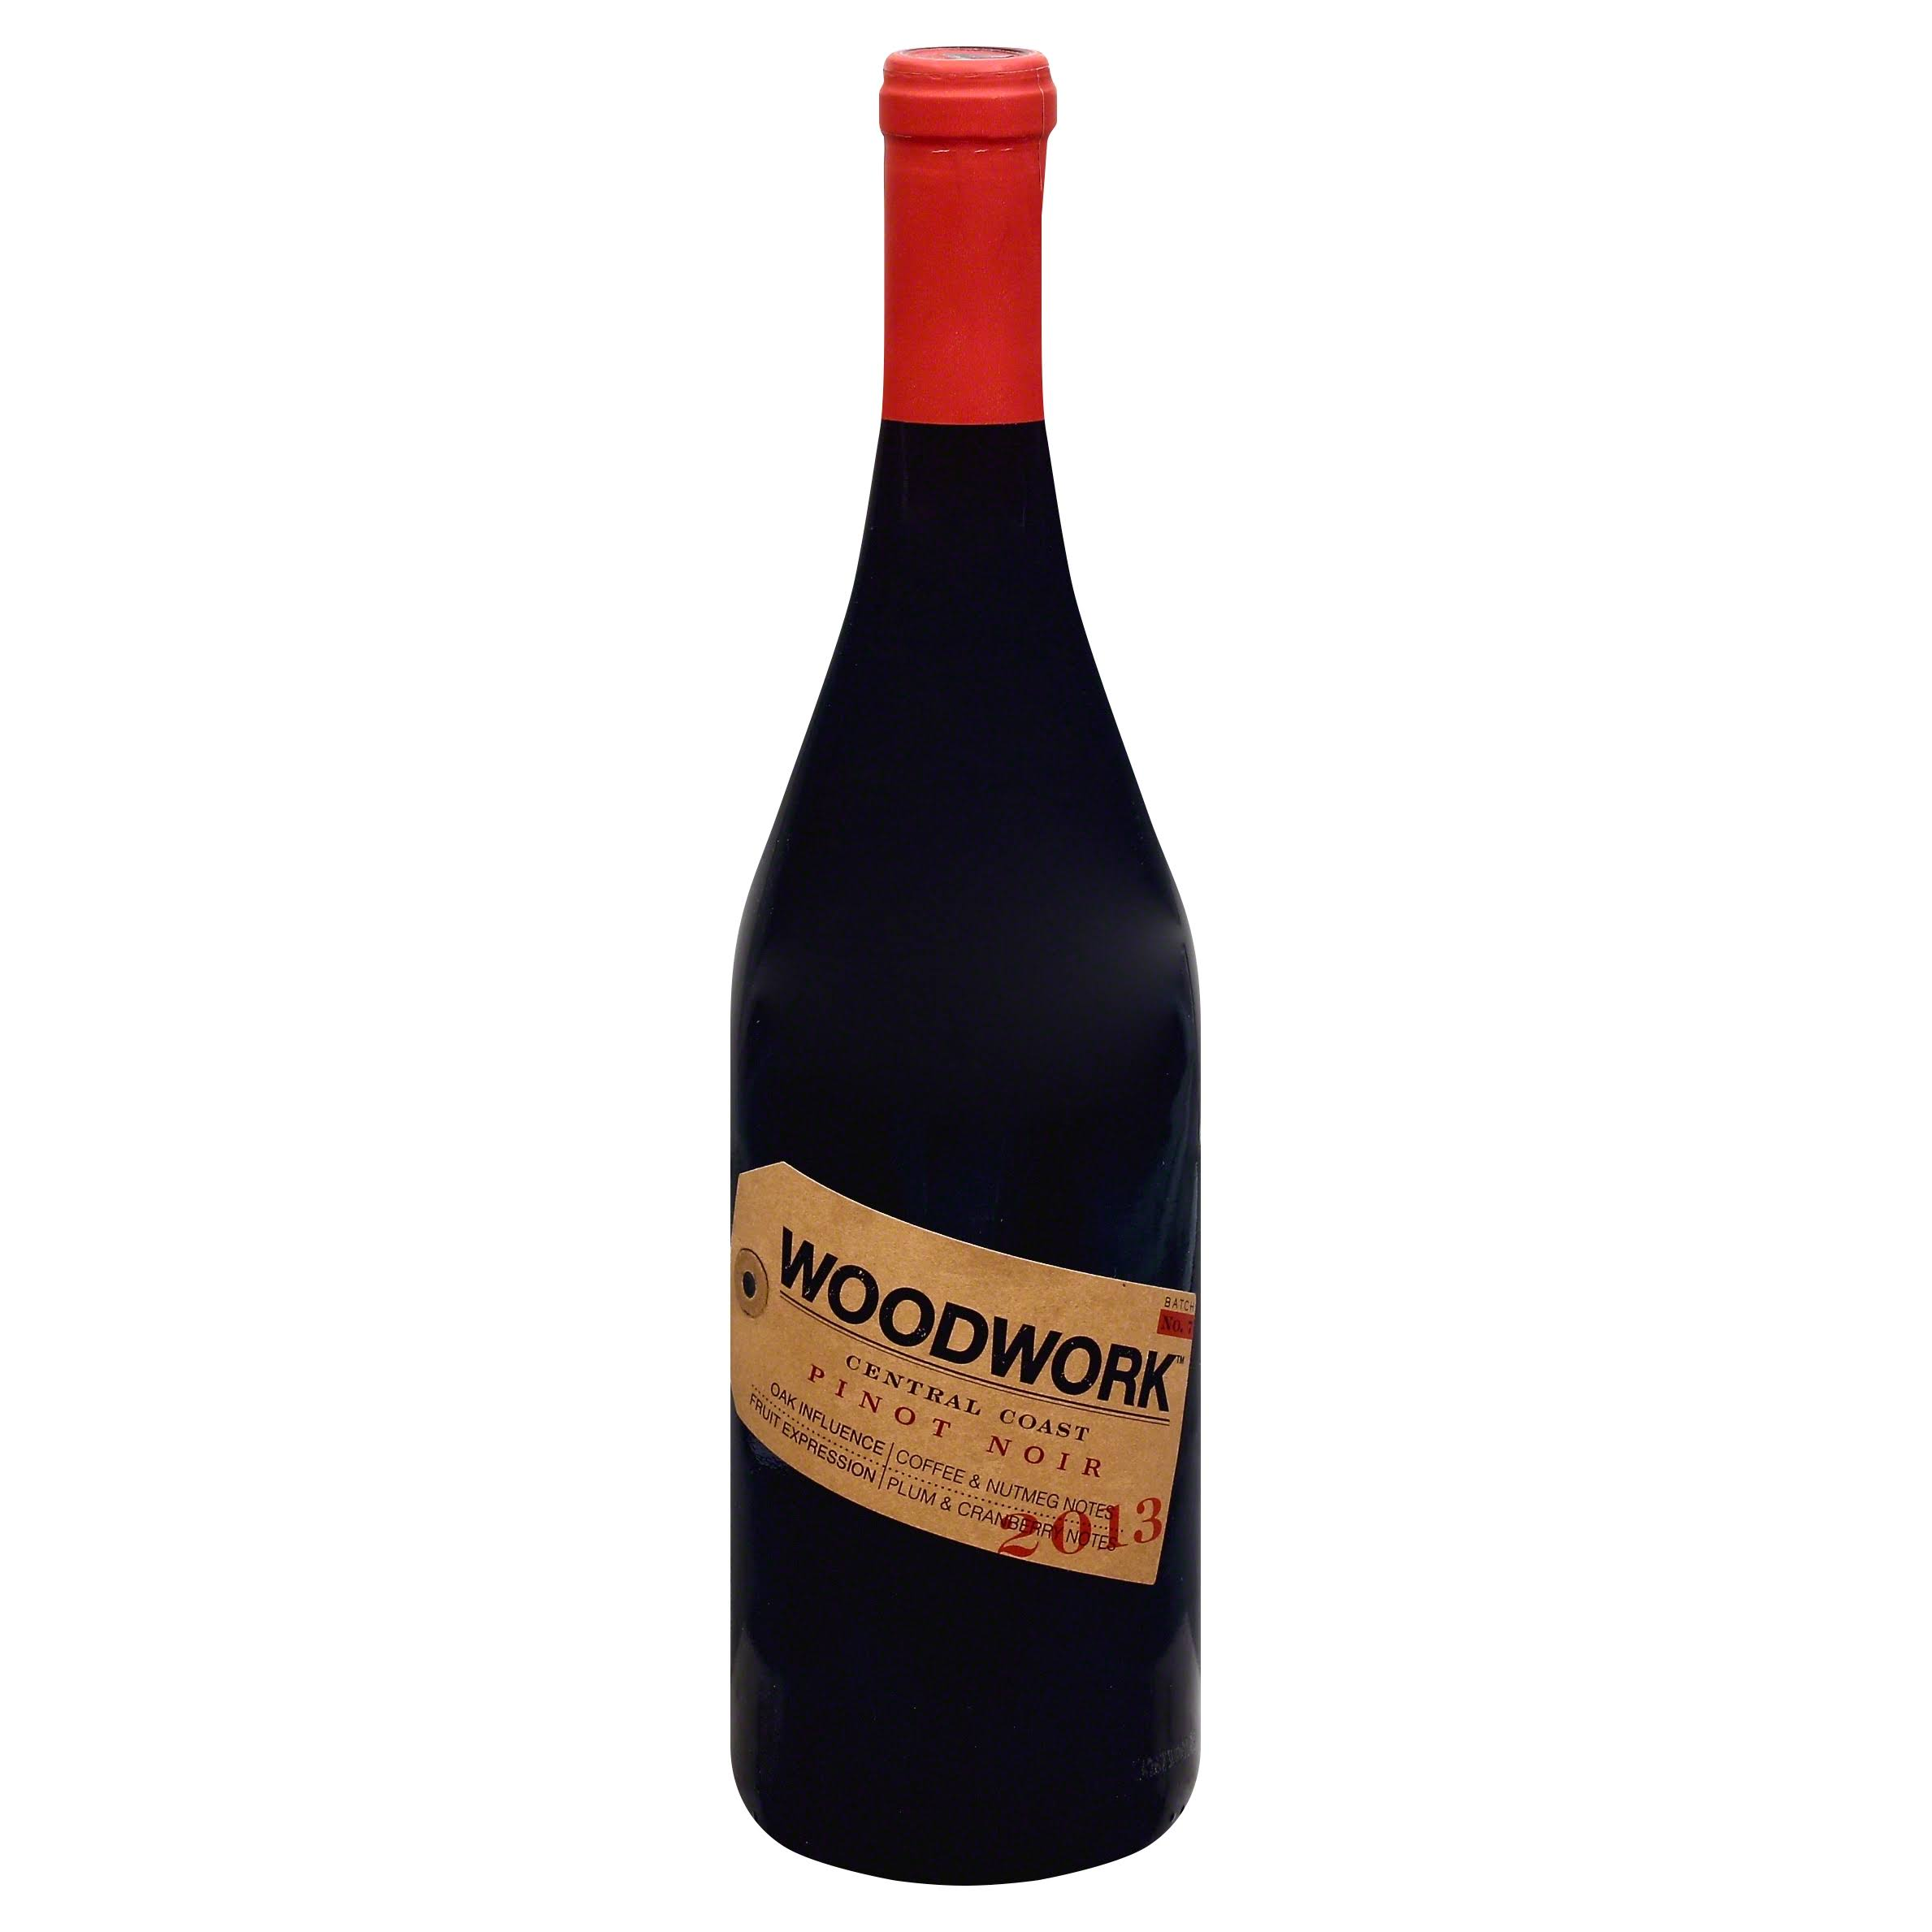 Woodwork Pinot Noir, California (Vintage Varies) - 750 ml bottle